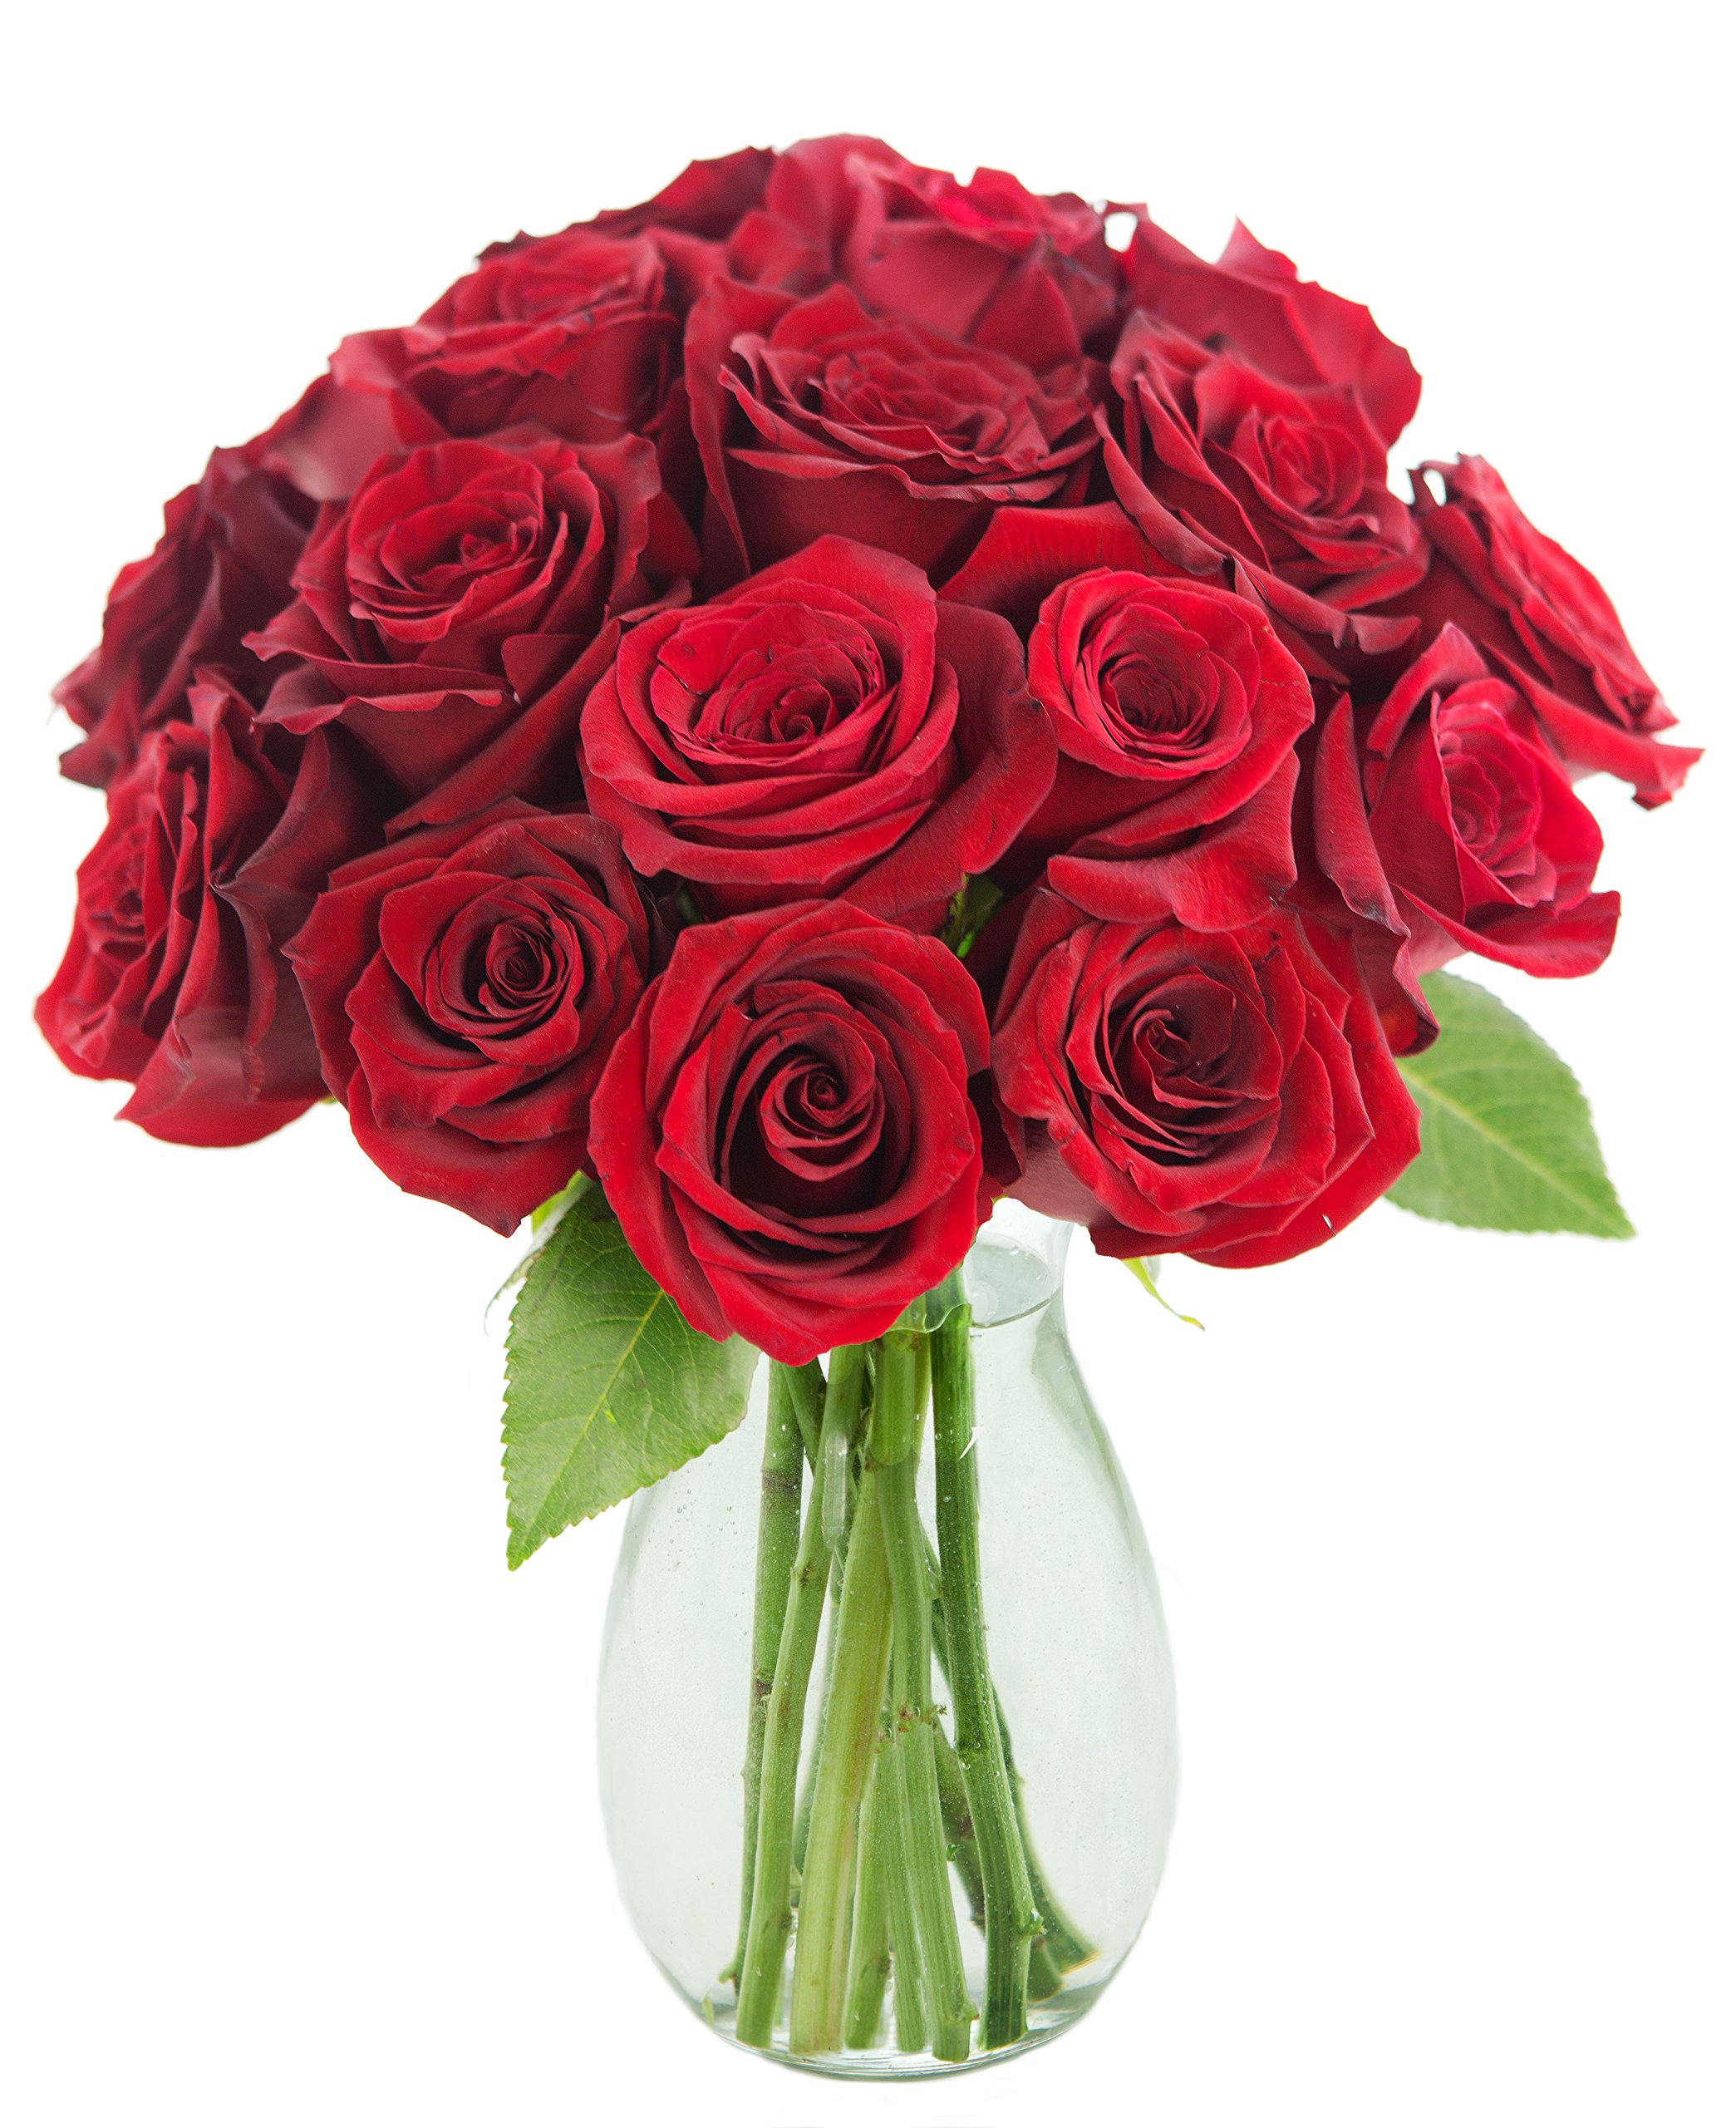 The Romantic Classic Red Rose Bouquet of 18 Fresh Cut Red Roses (Farm-Fresh, Long-Stem) with Free Vase Included